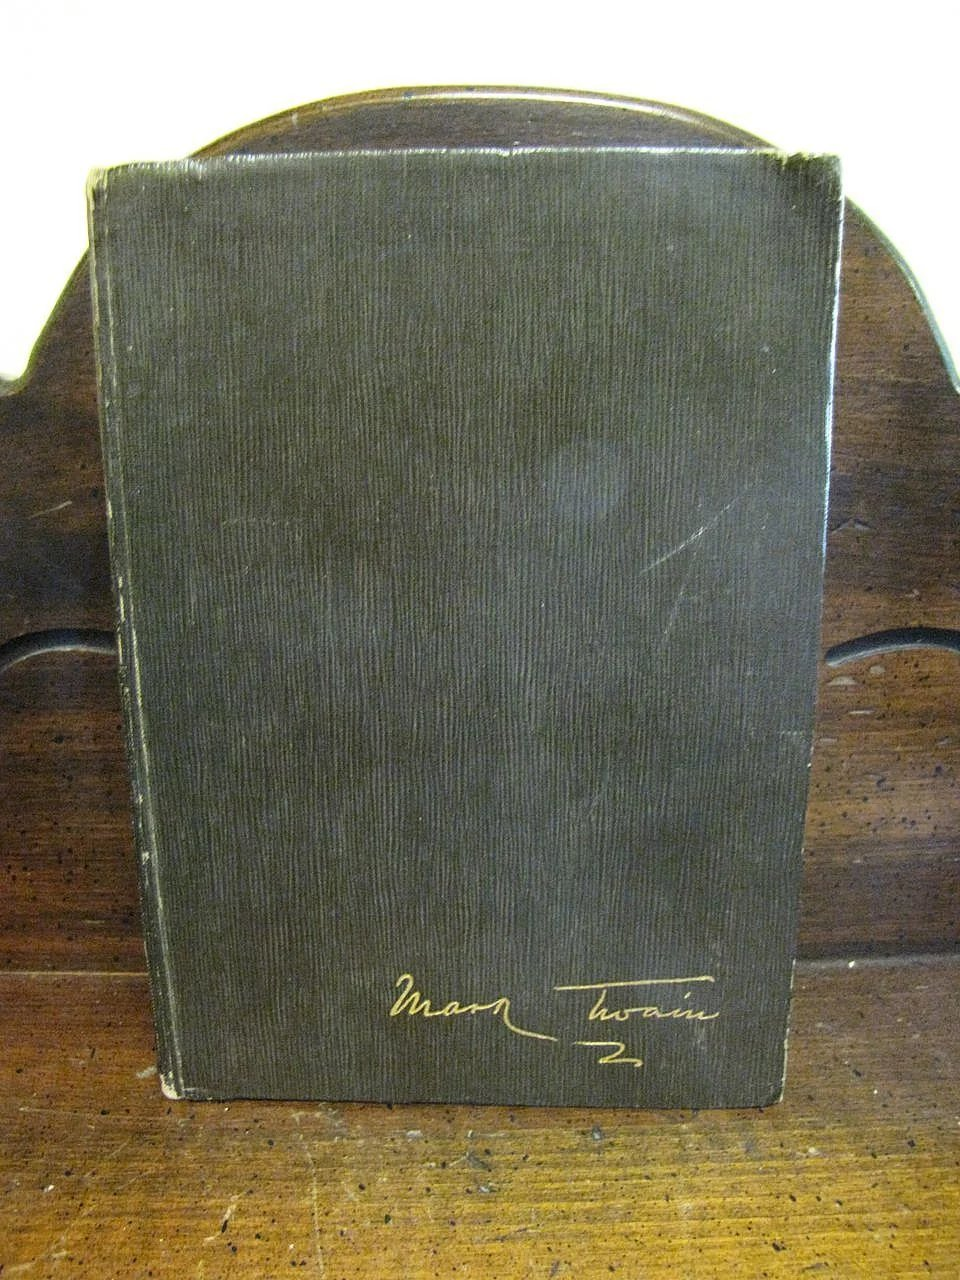 the complete short stories and famous essays of mark twain one volume edition The complete short stories and famous essays of mark twain (one volume edition) by twain, mark book condition: very good book description p f collier, 1900-01-01.